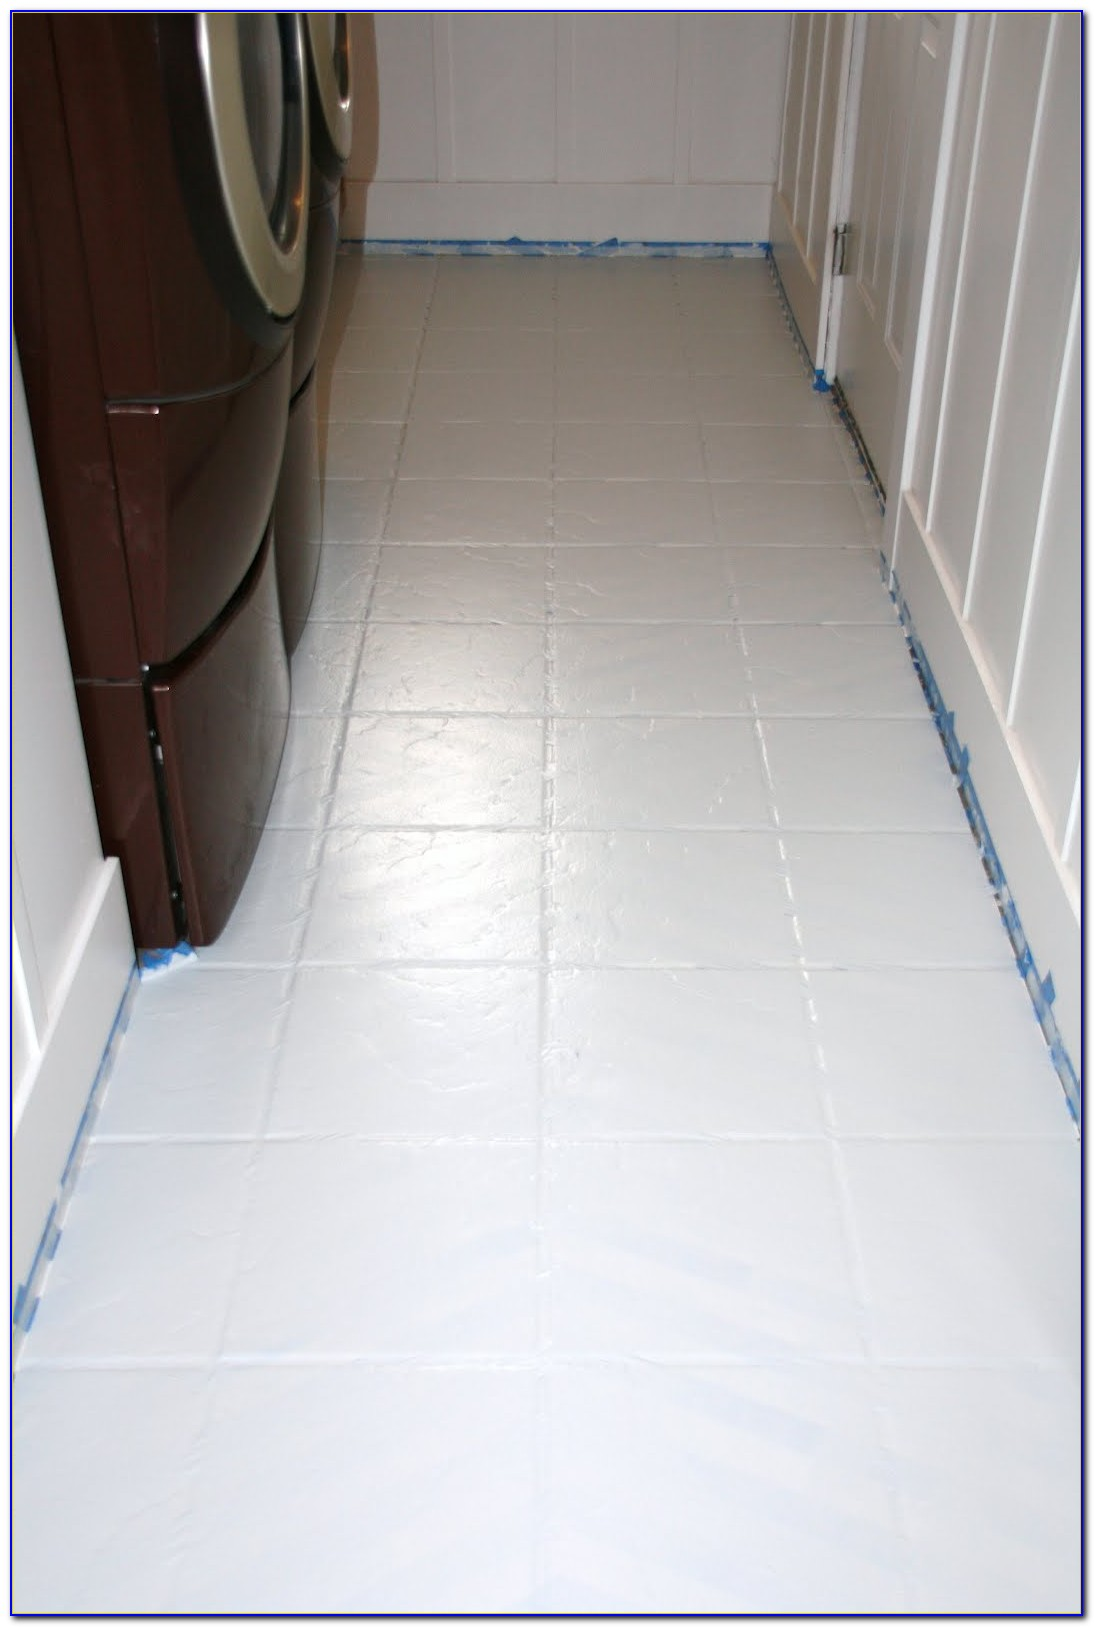 Sherwin Williams Epoxy Floor Kit